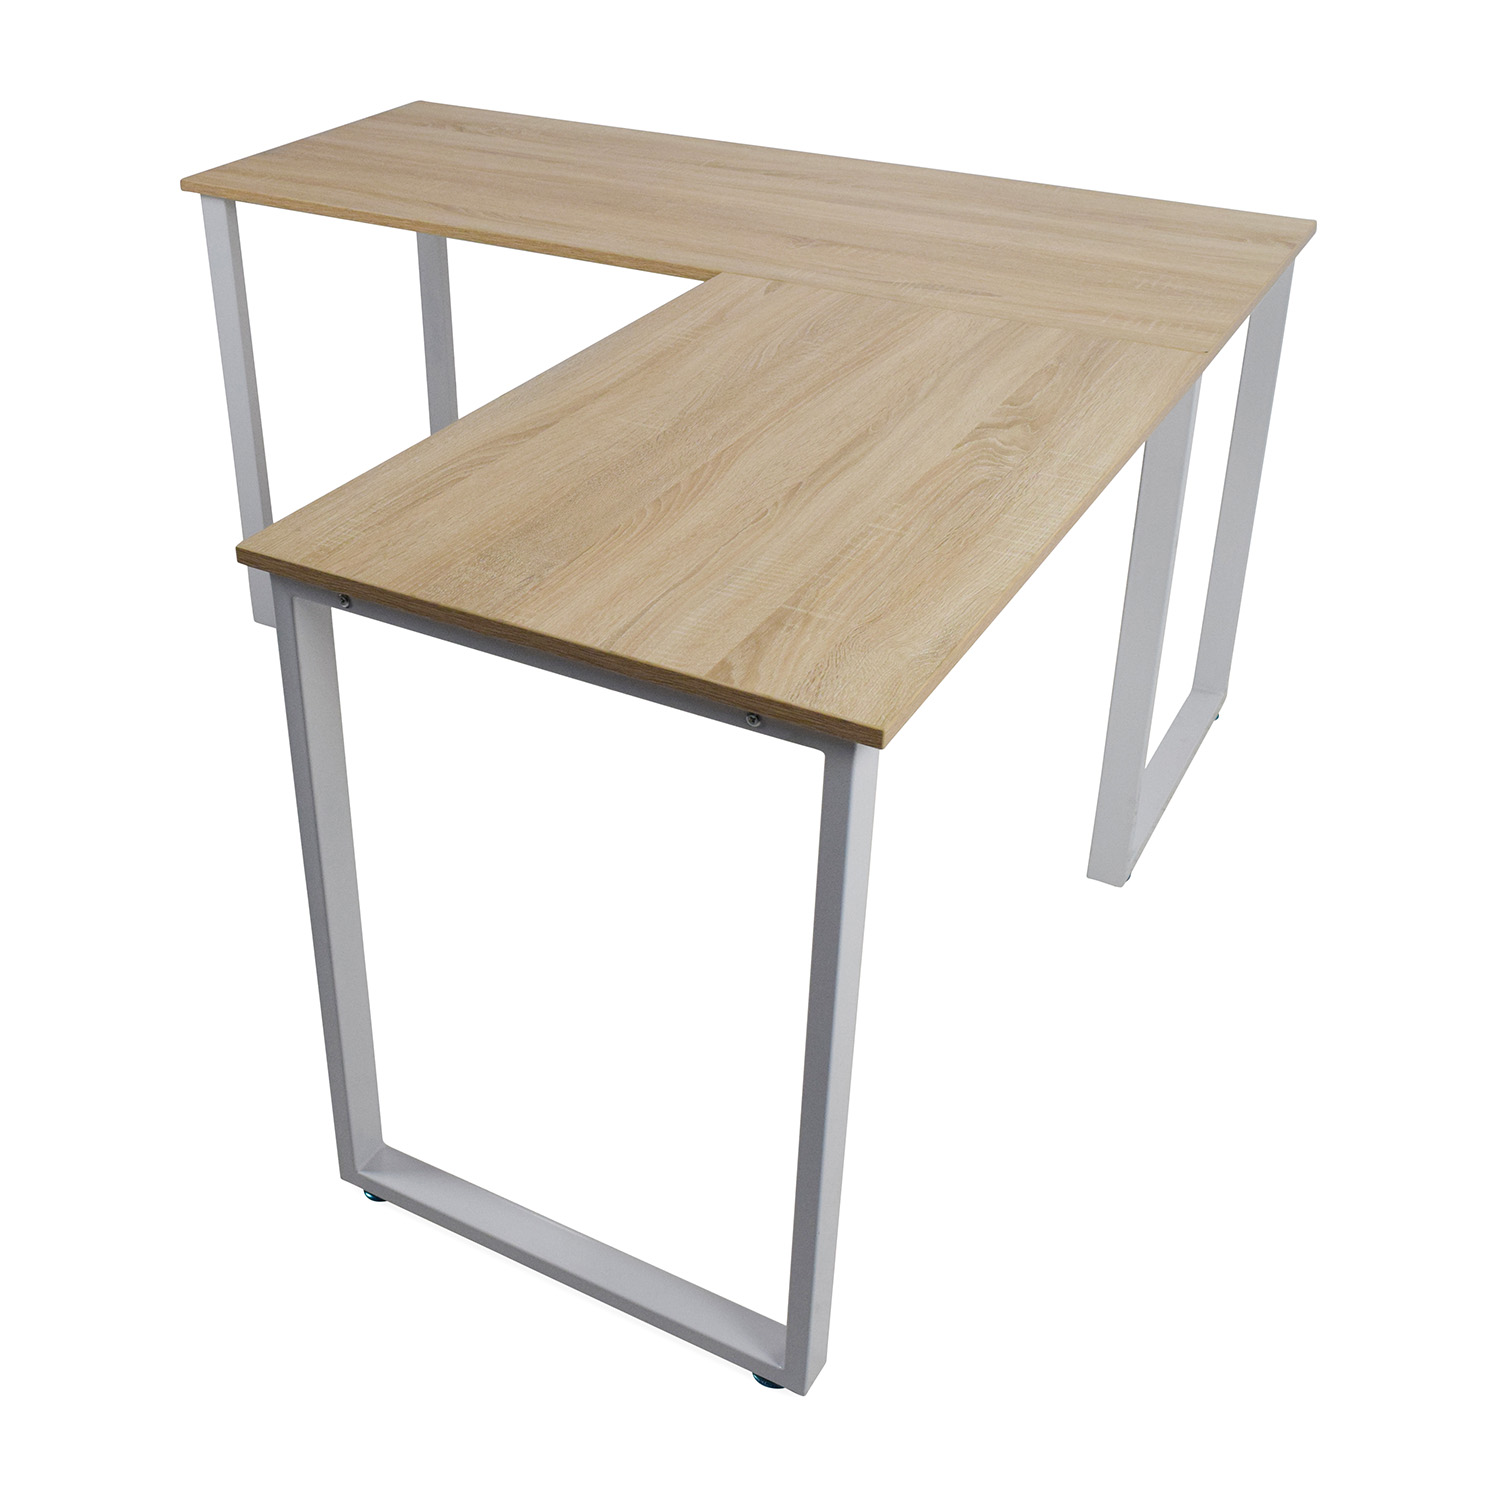 60% OFF - Merax Merax L-Shaped Computer Desk / Tables